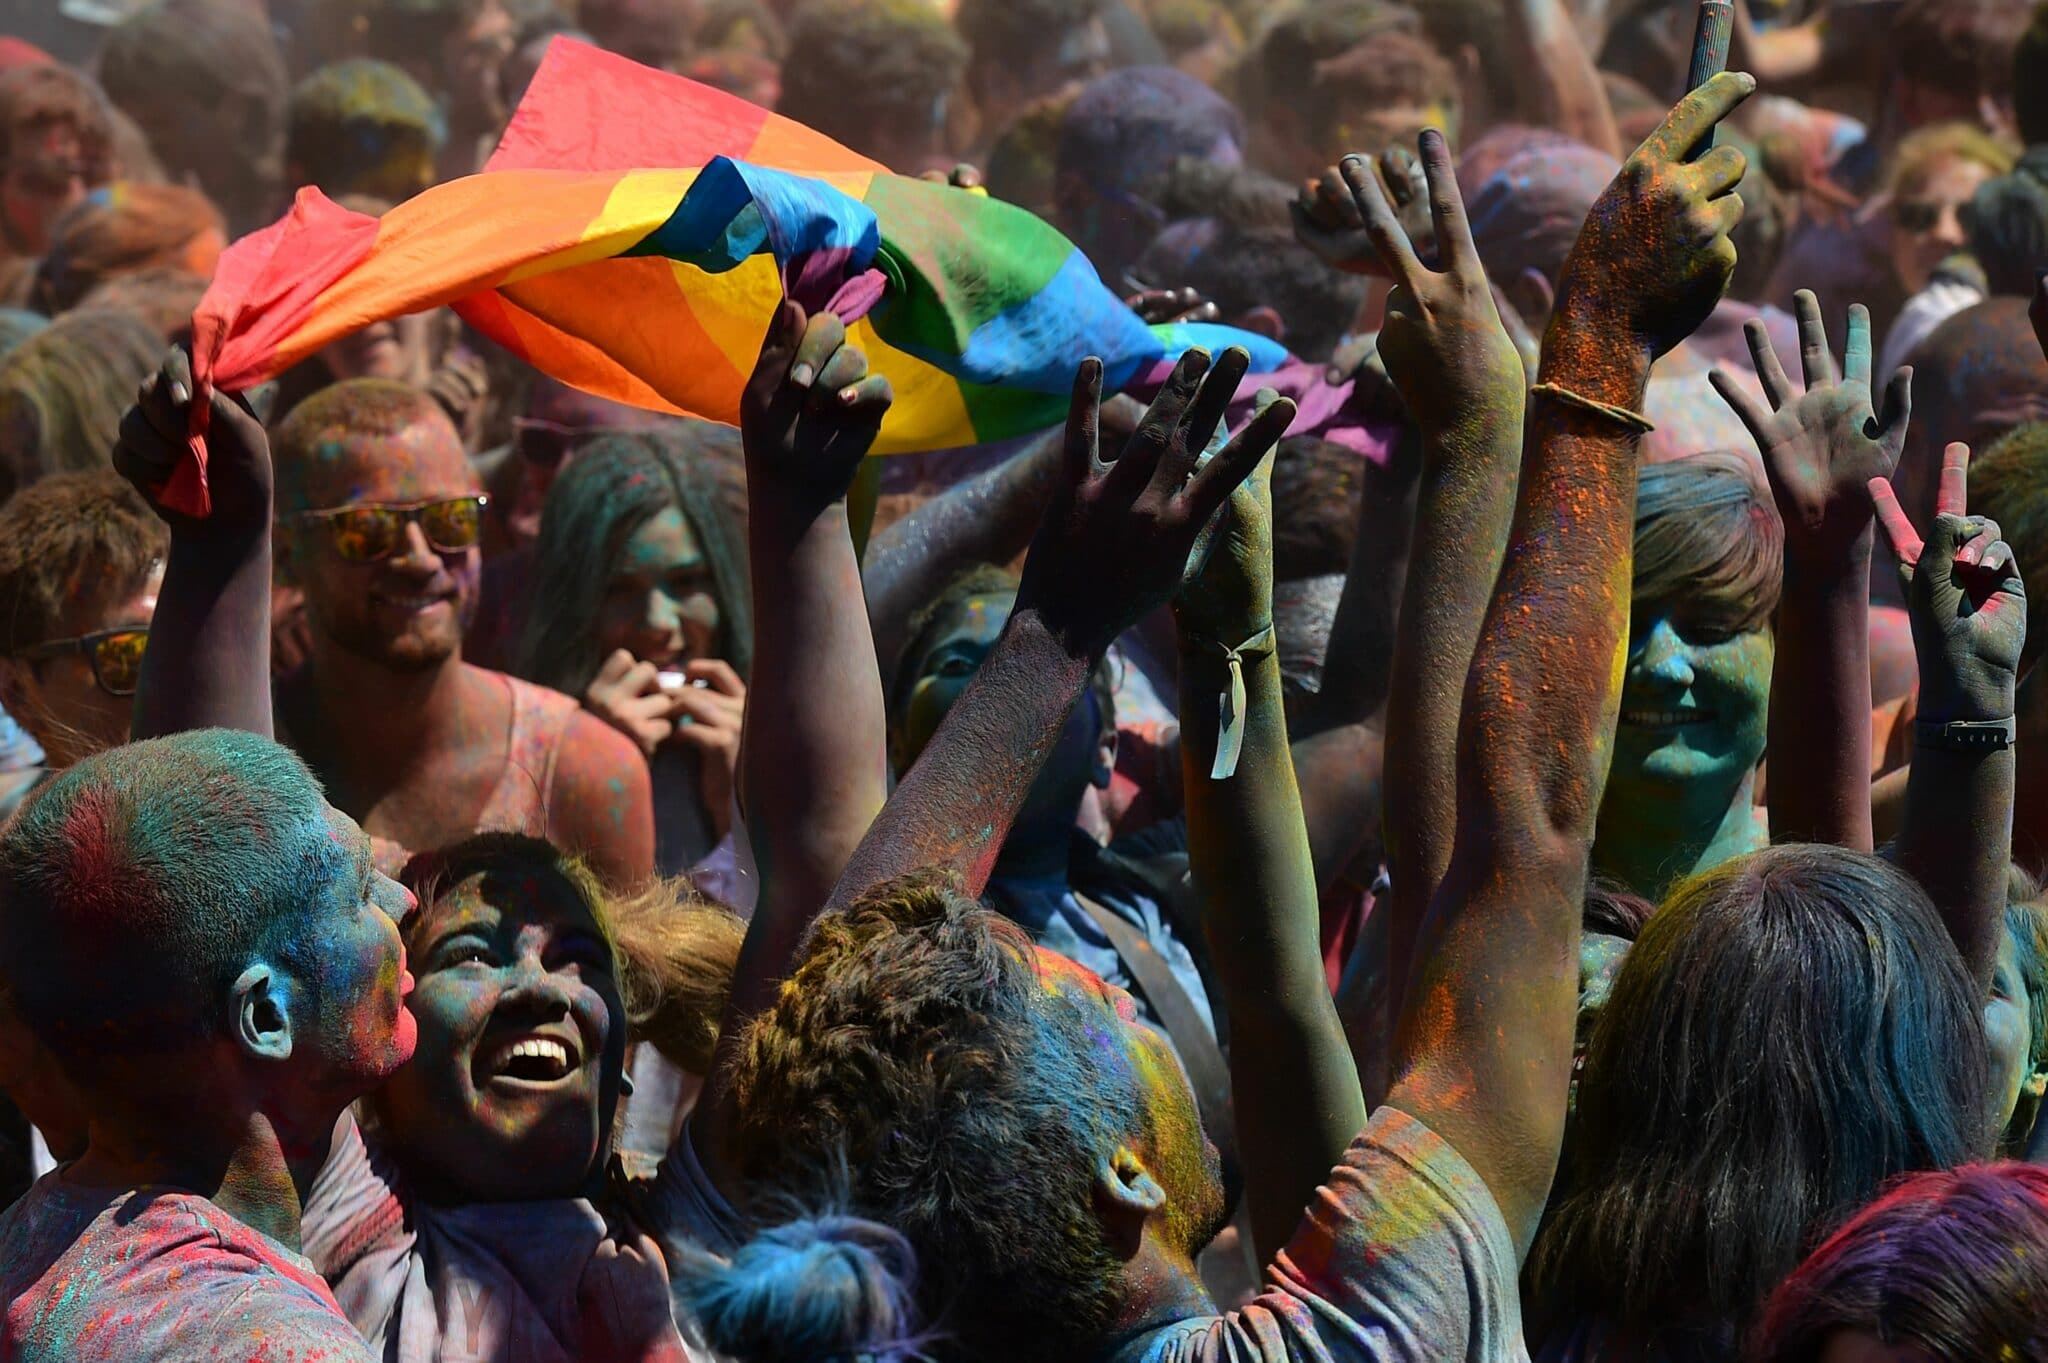 Hindu and Buddhist communities call for 'immediate' UK conversion therapy ban